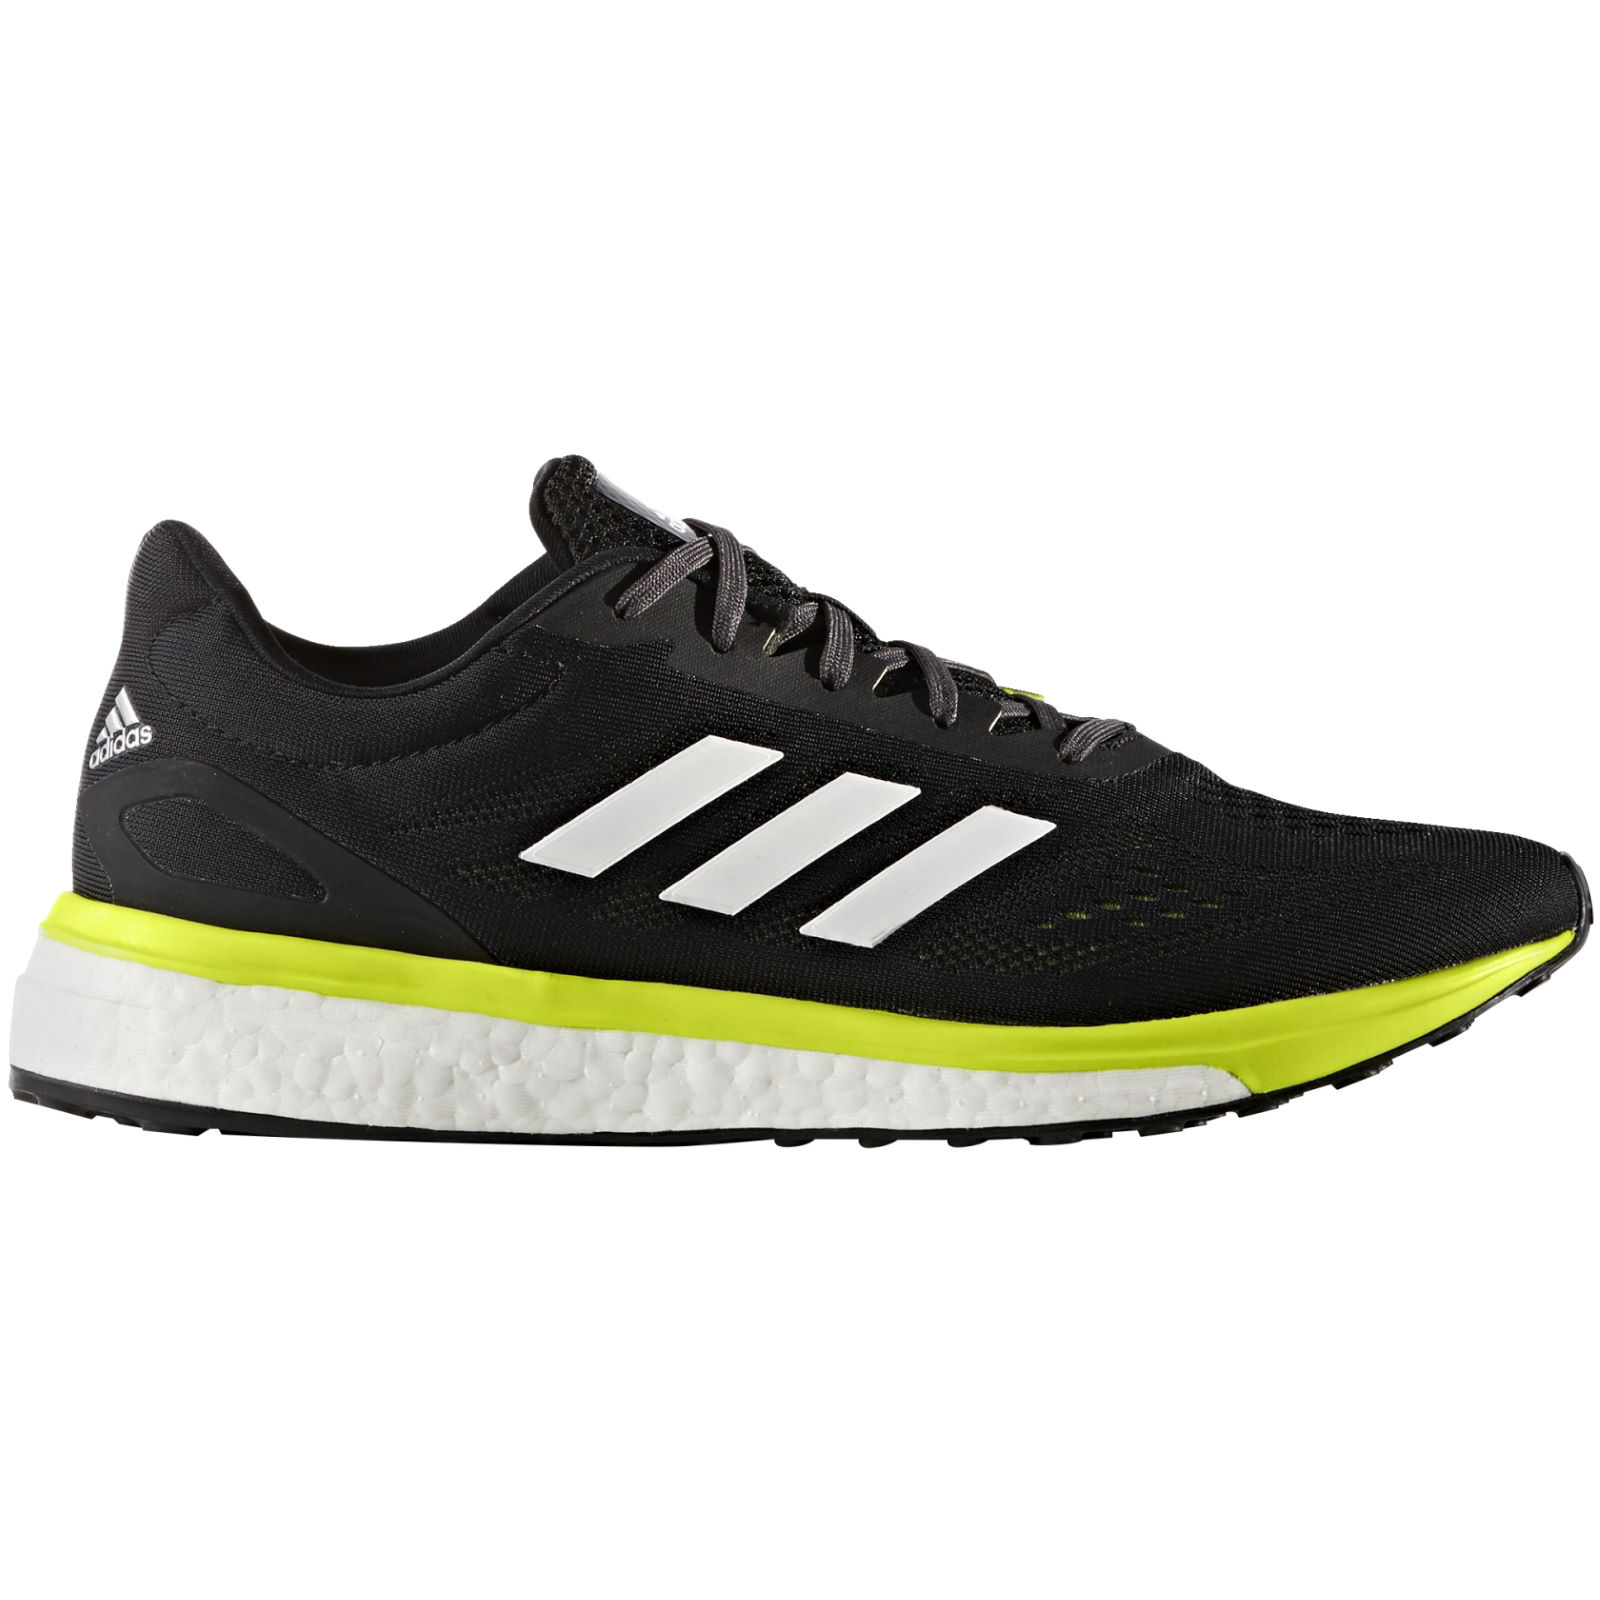 wiggle adidas response lt shoes cushion running shoes. Black Bedroom Furniture Sets. Home Design Ideas